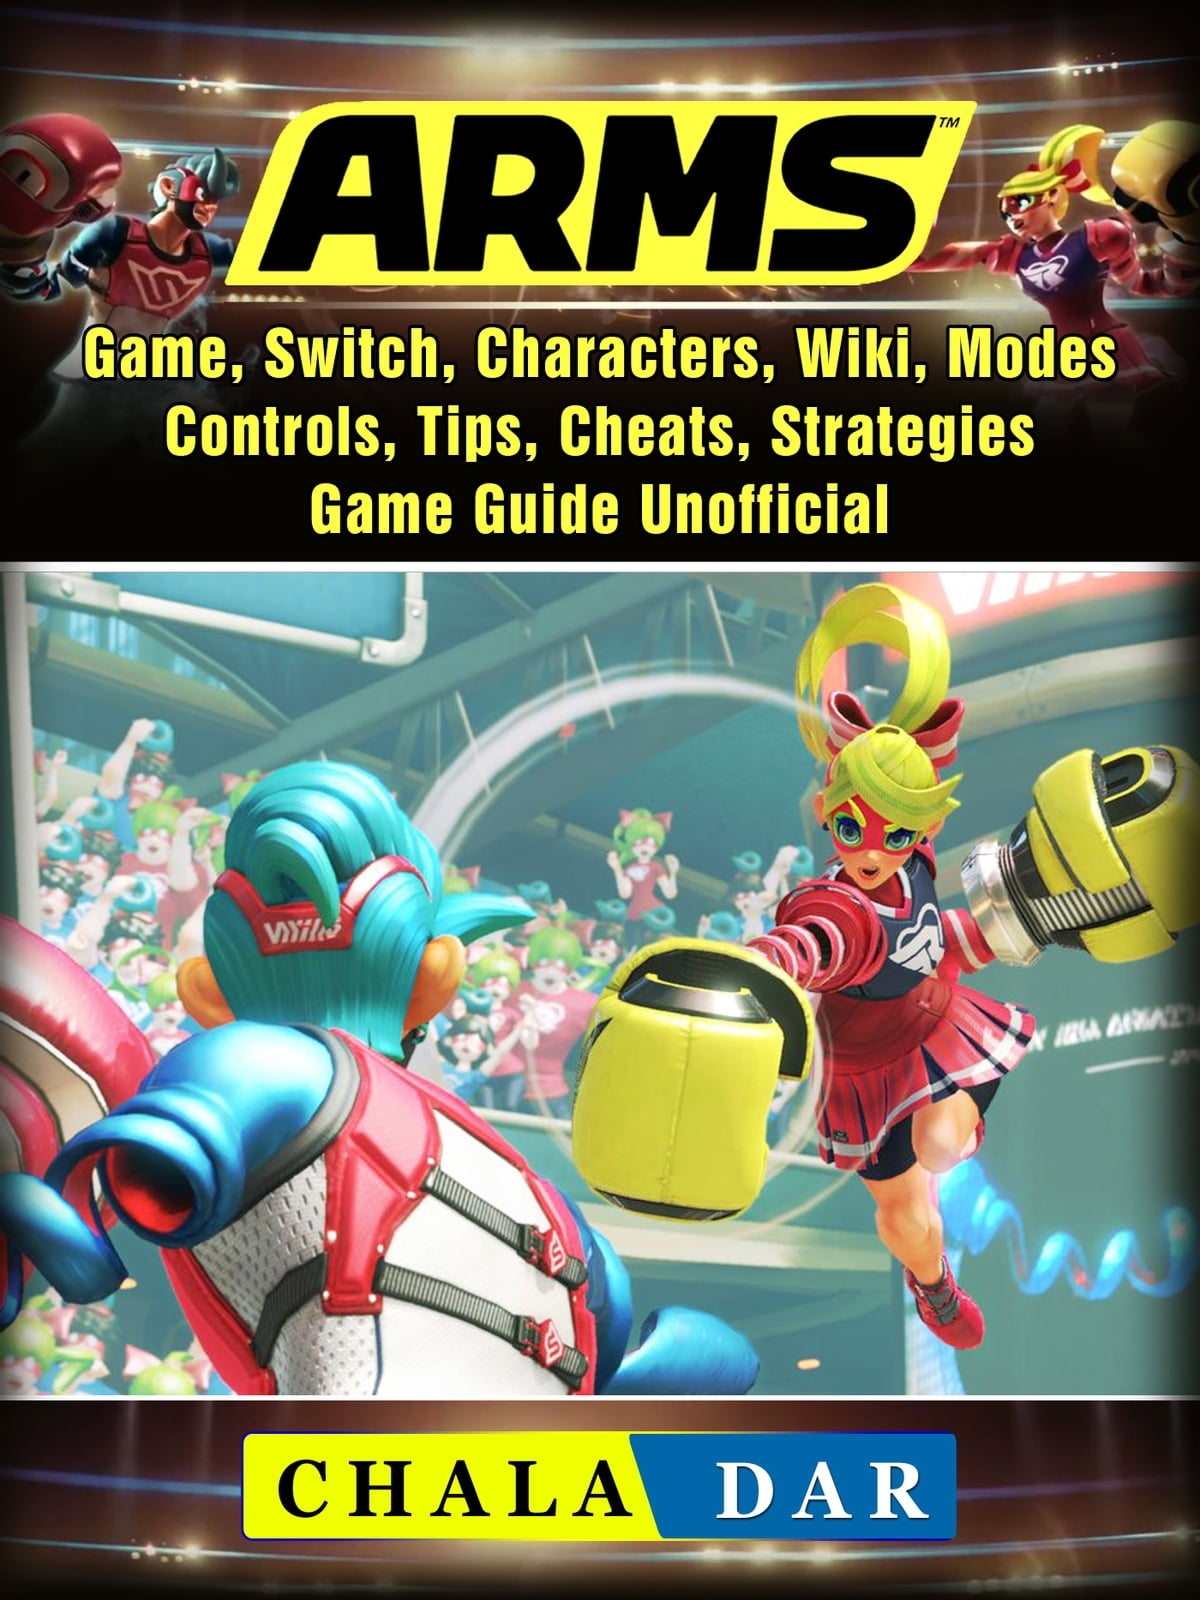 Arms Game Switch Characters Wiki Modes Controls Tips Cheats Strategies Game Guide Unofficial Ebooks By Chala Dar Rakuten Kobo - a roblox gift card i found while cleaning fine reddit